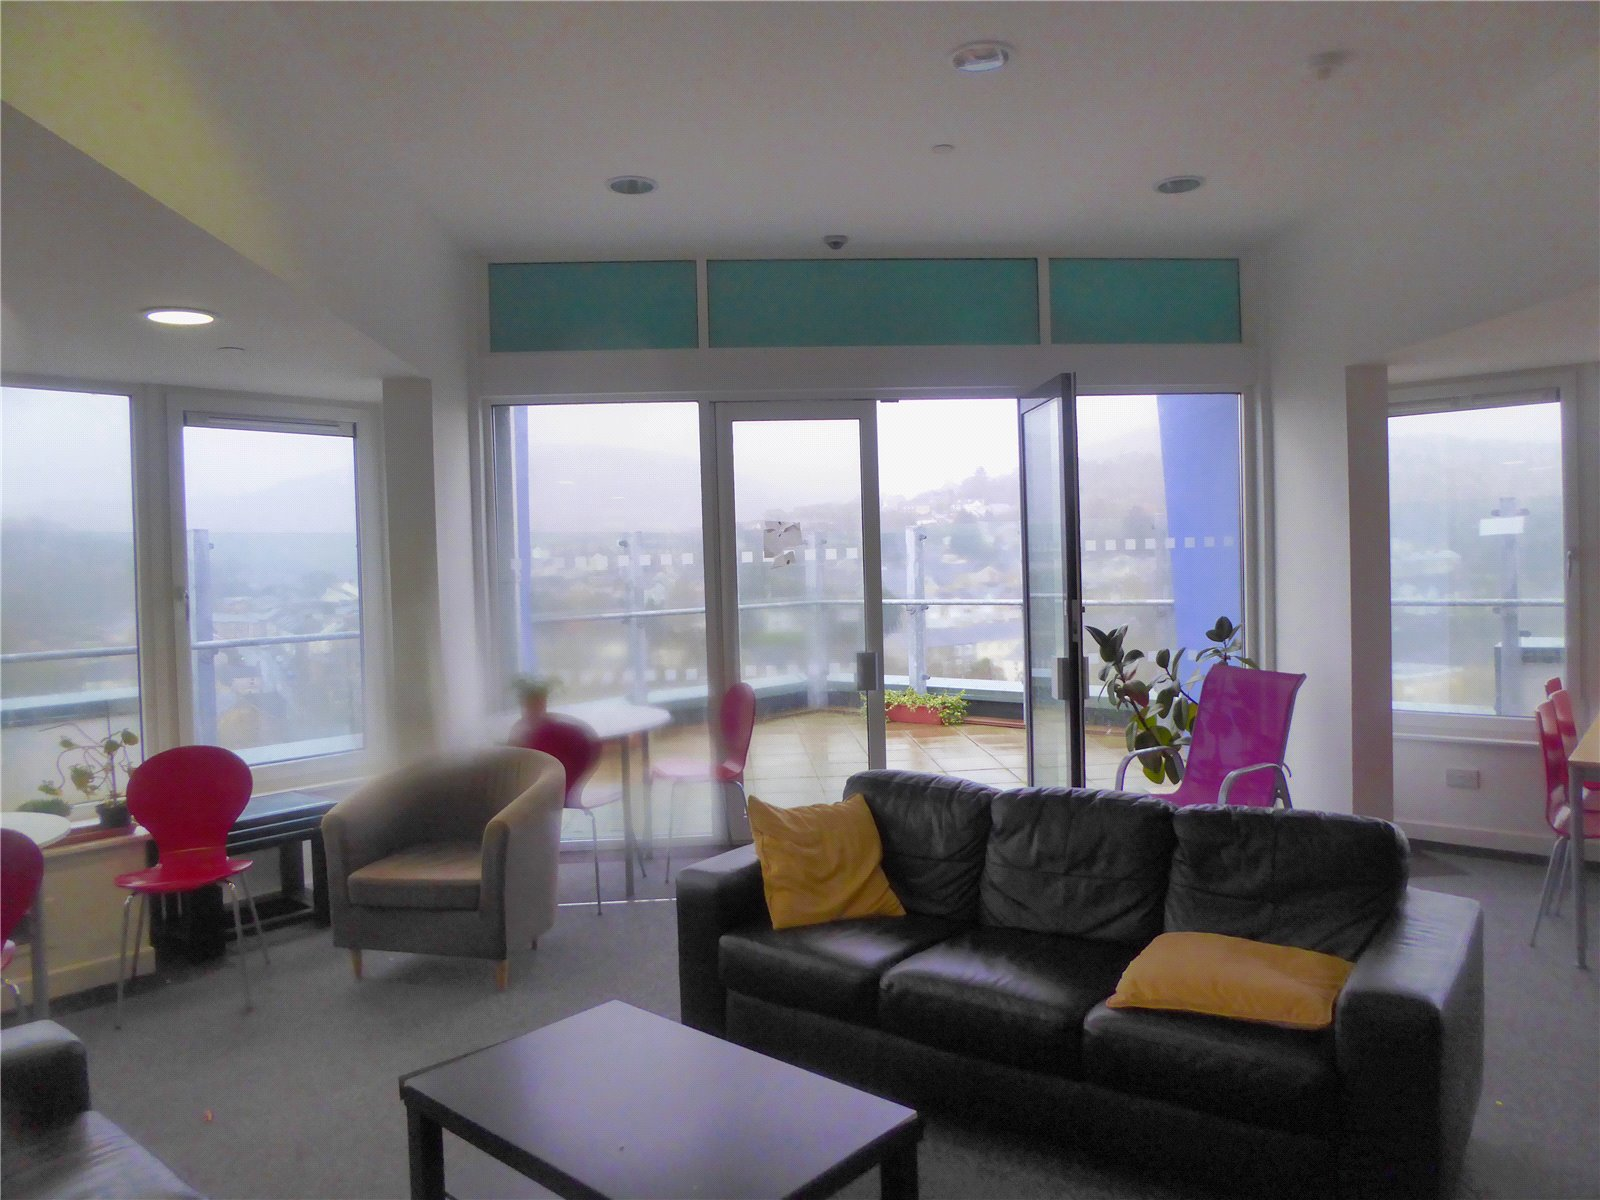 Cj Hole Newport 1 Bedroom Flat For Sale In Fairview Court